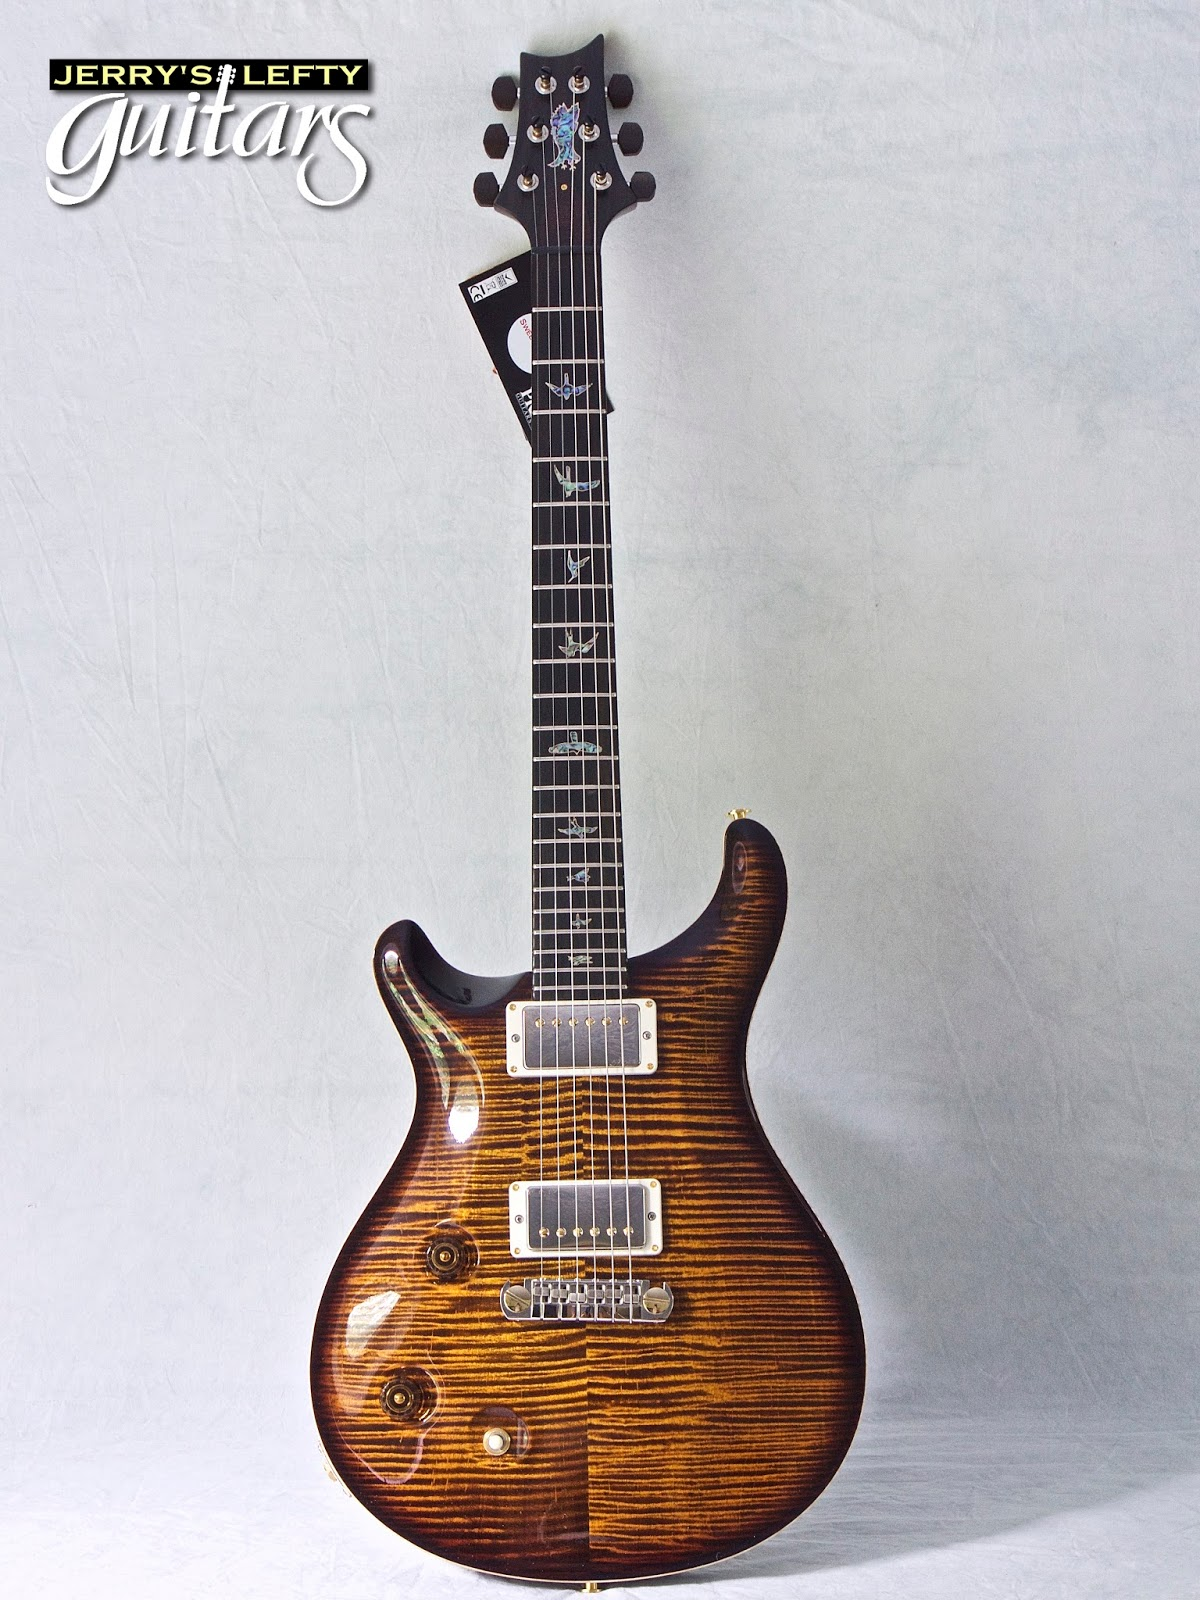 jerry 39 s lefty guitars newest guitar arrivals updated weekly 2013 prs private stock custom 22. Black Bedroom Furniture Sets. Home Design Ideas